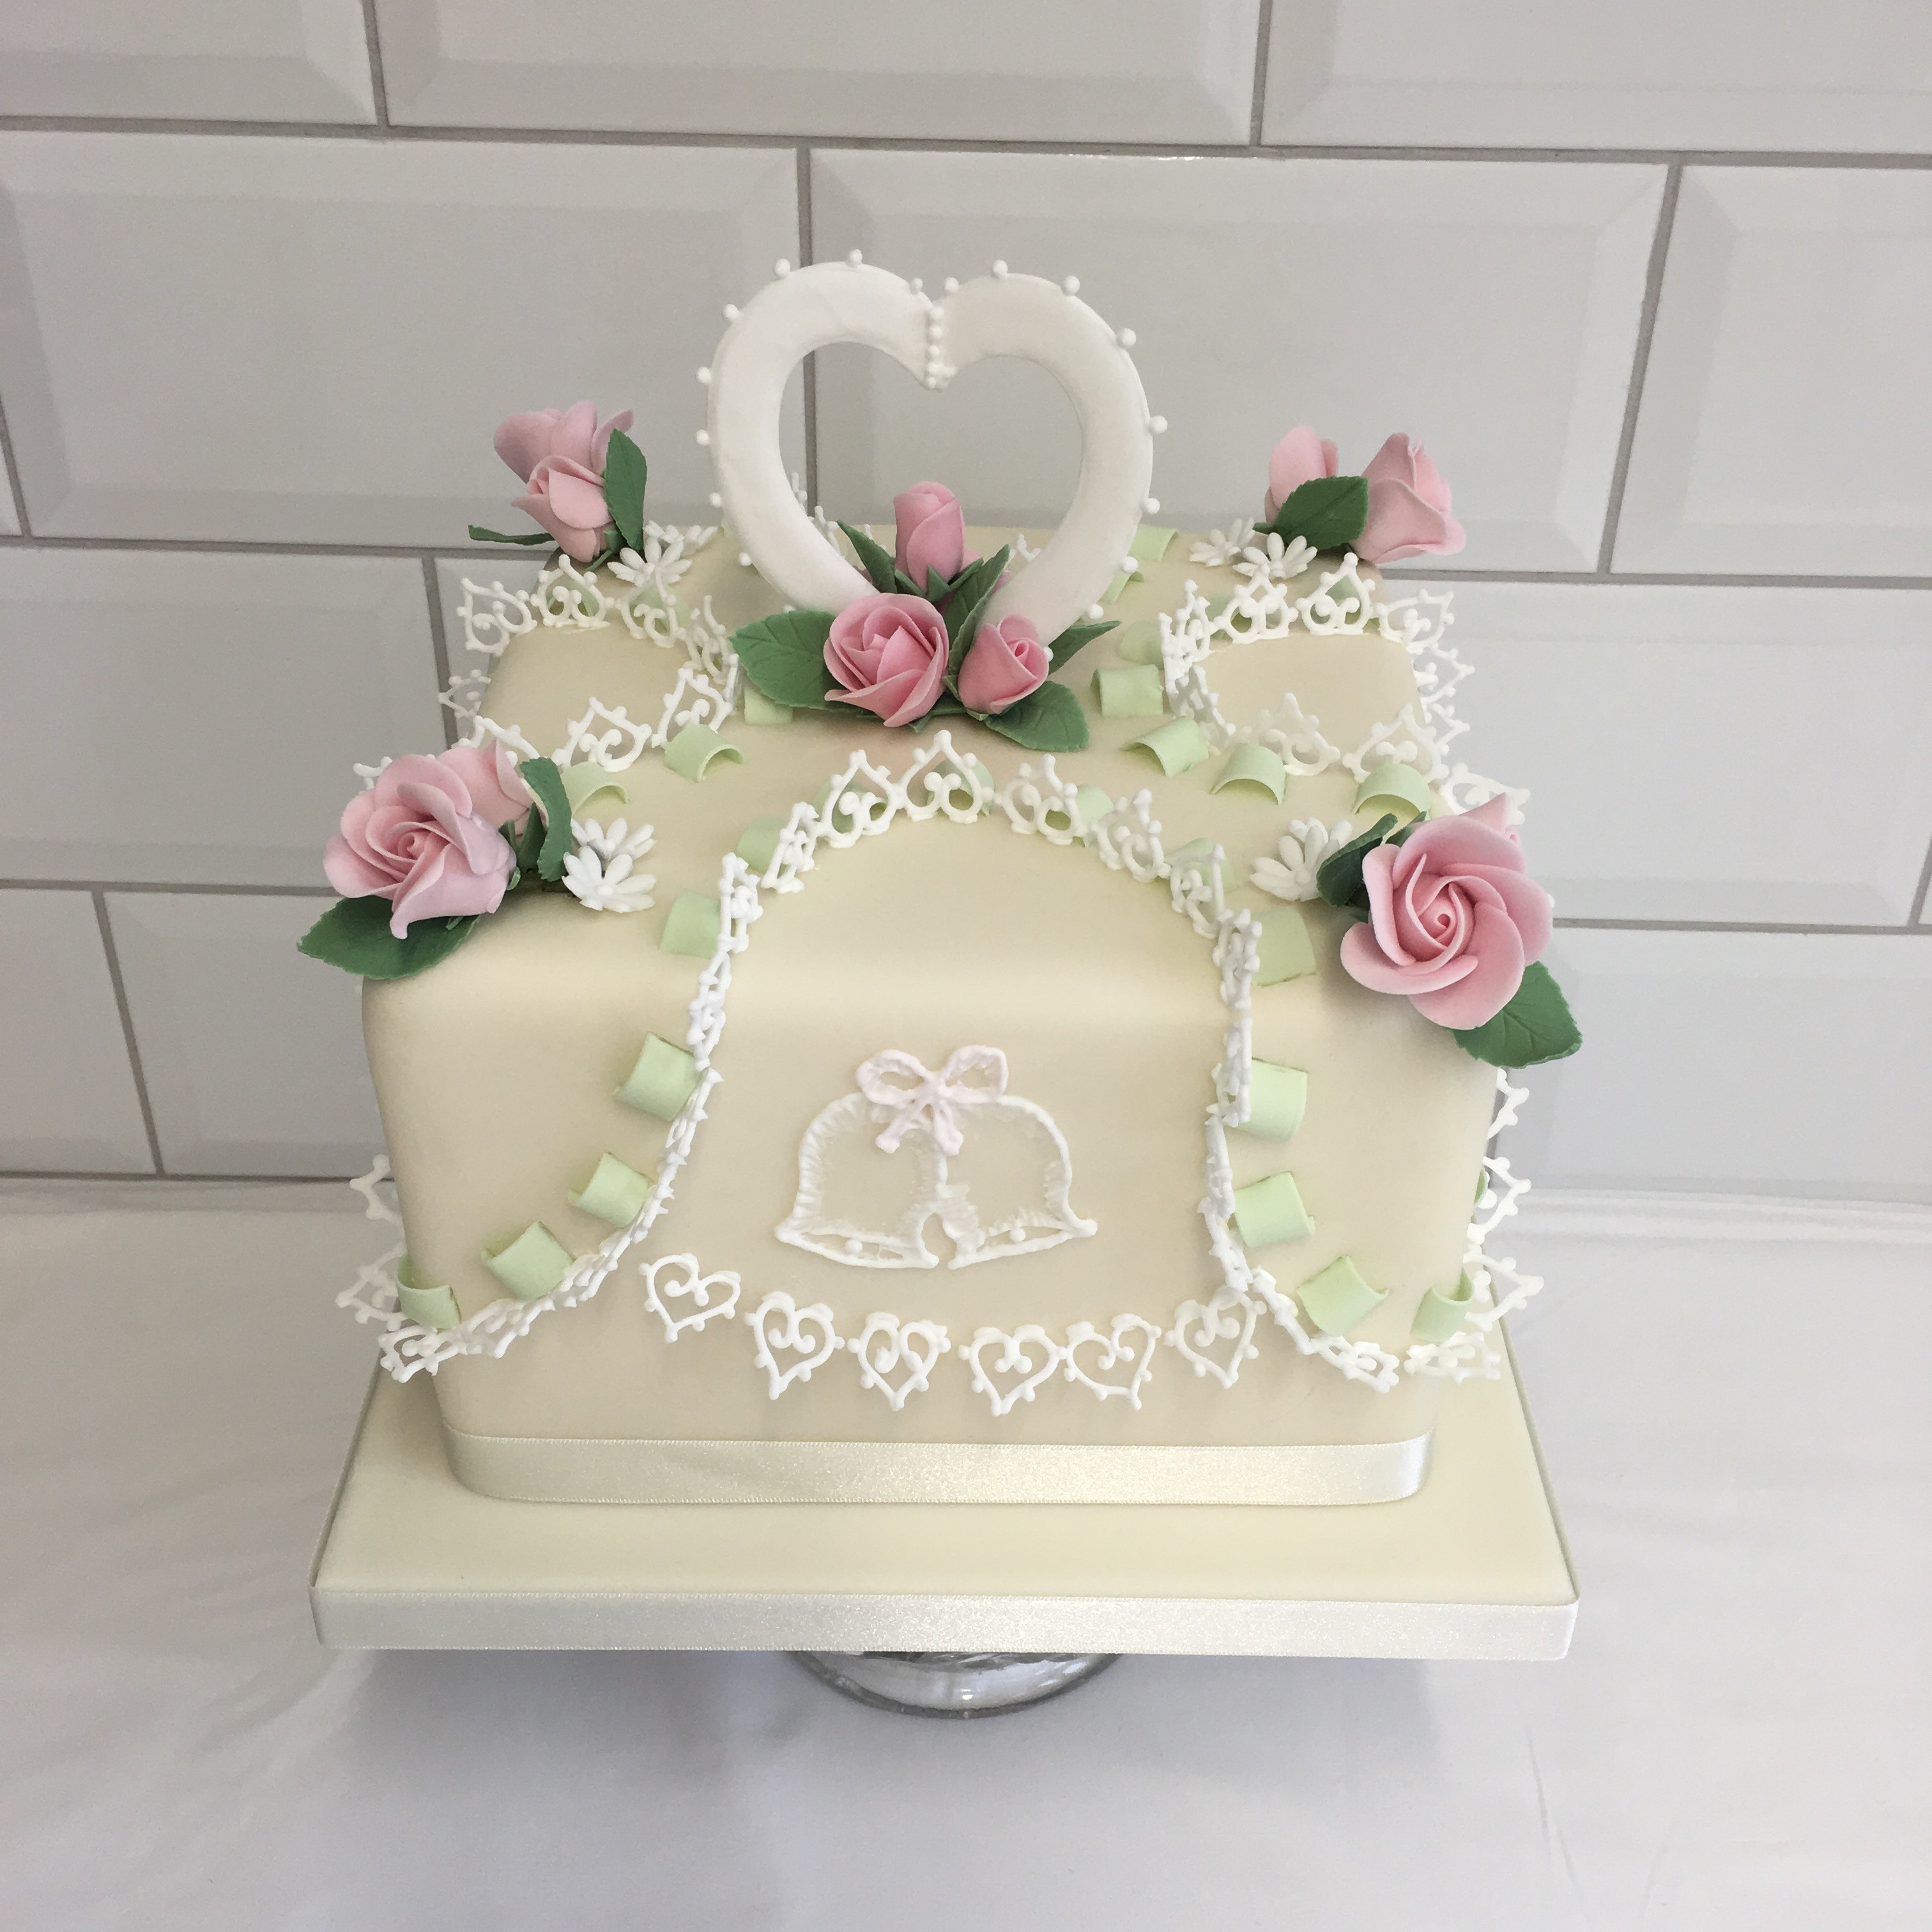 Traditional Techniques For A 25th Wedding Anniversary Cake Hannah Hickman Cakes